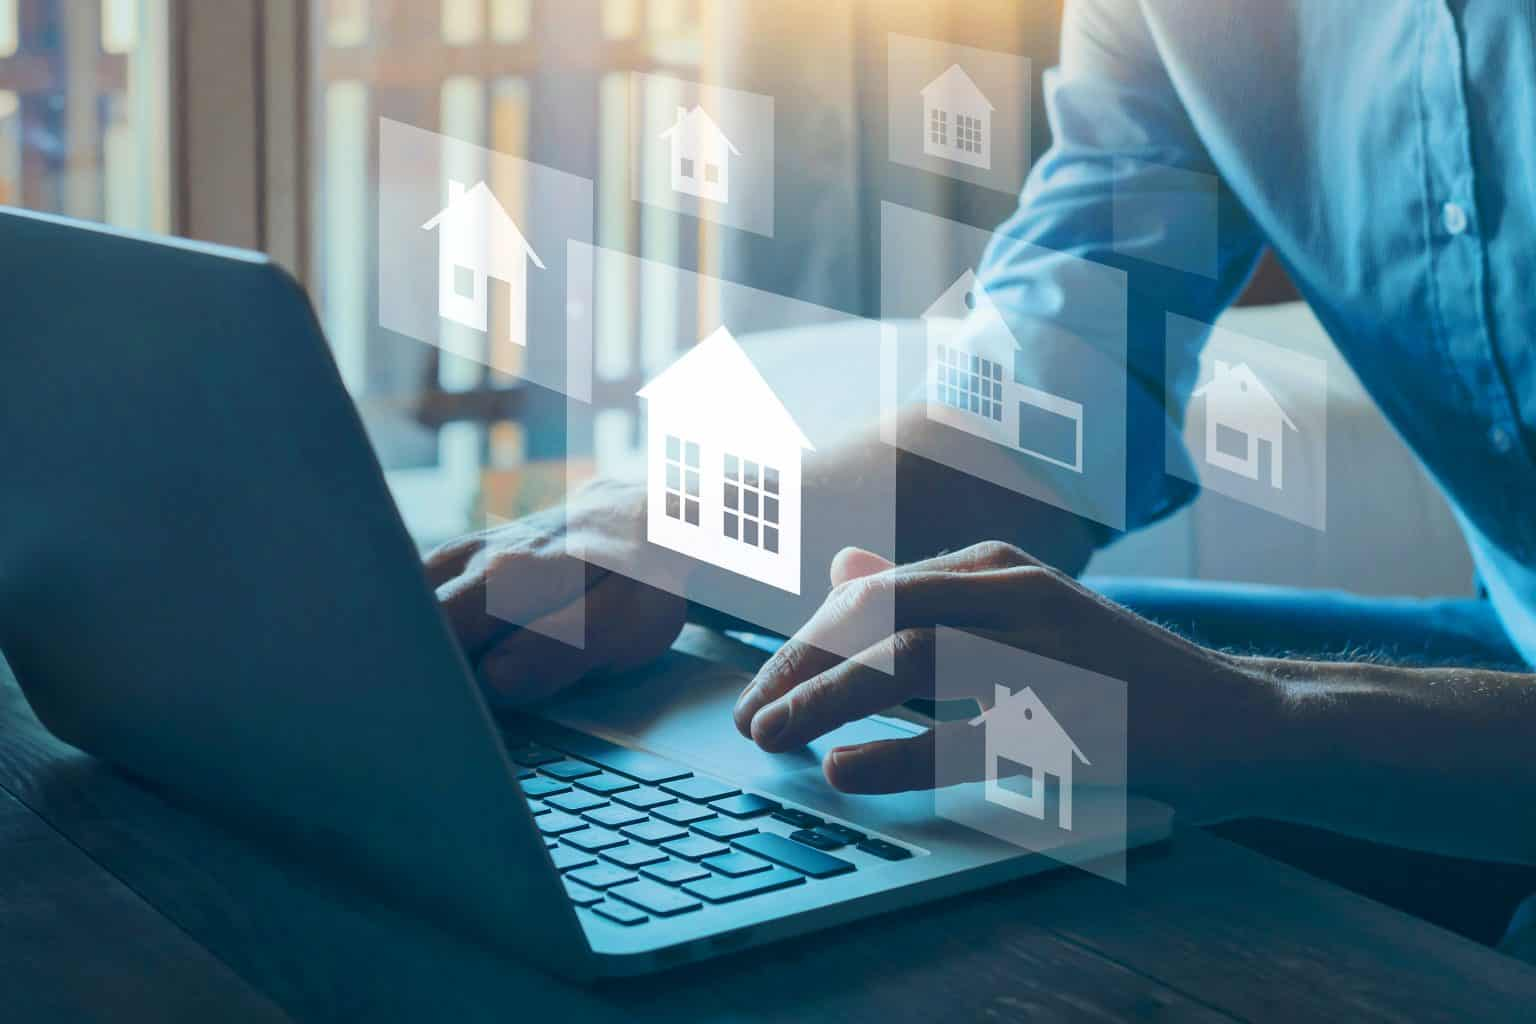 researching property information online when looking to purchase property